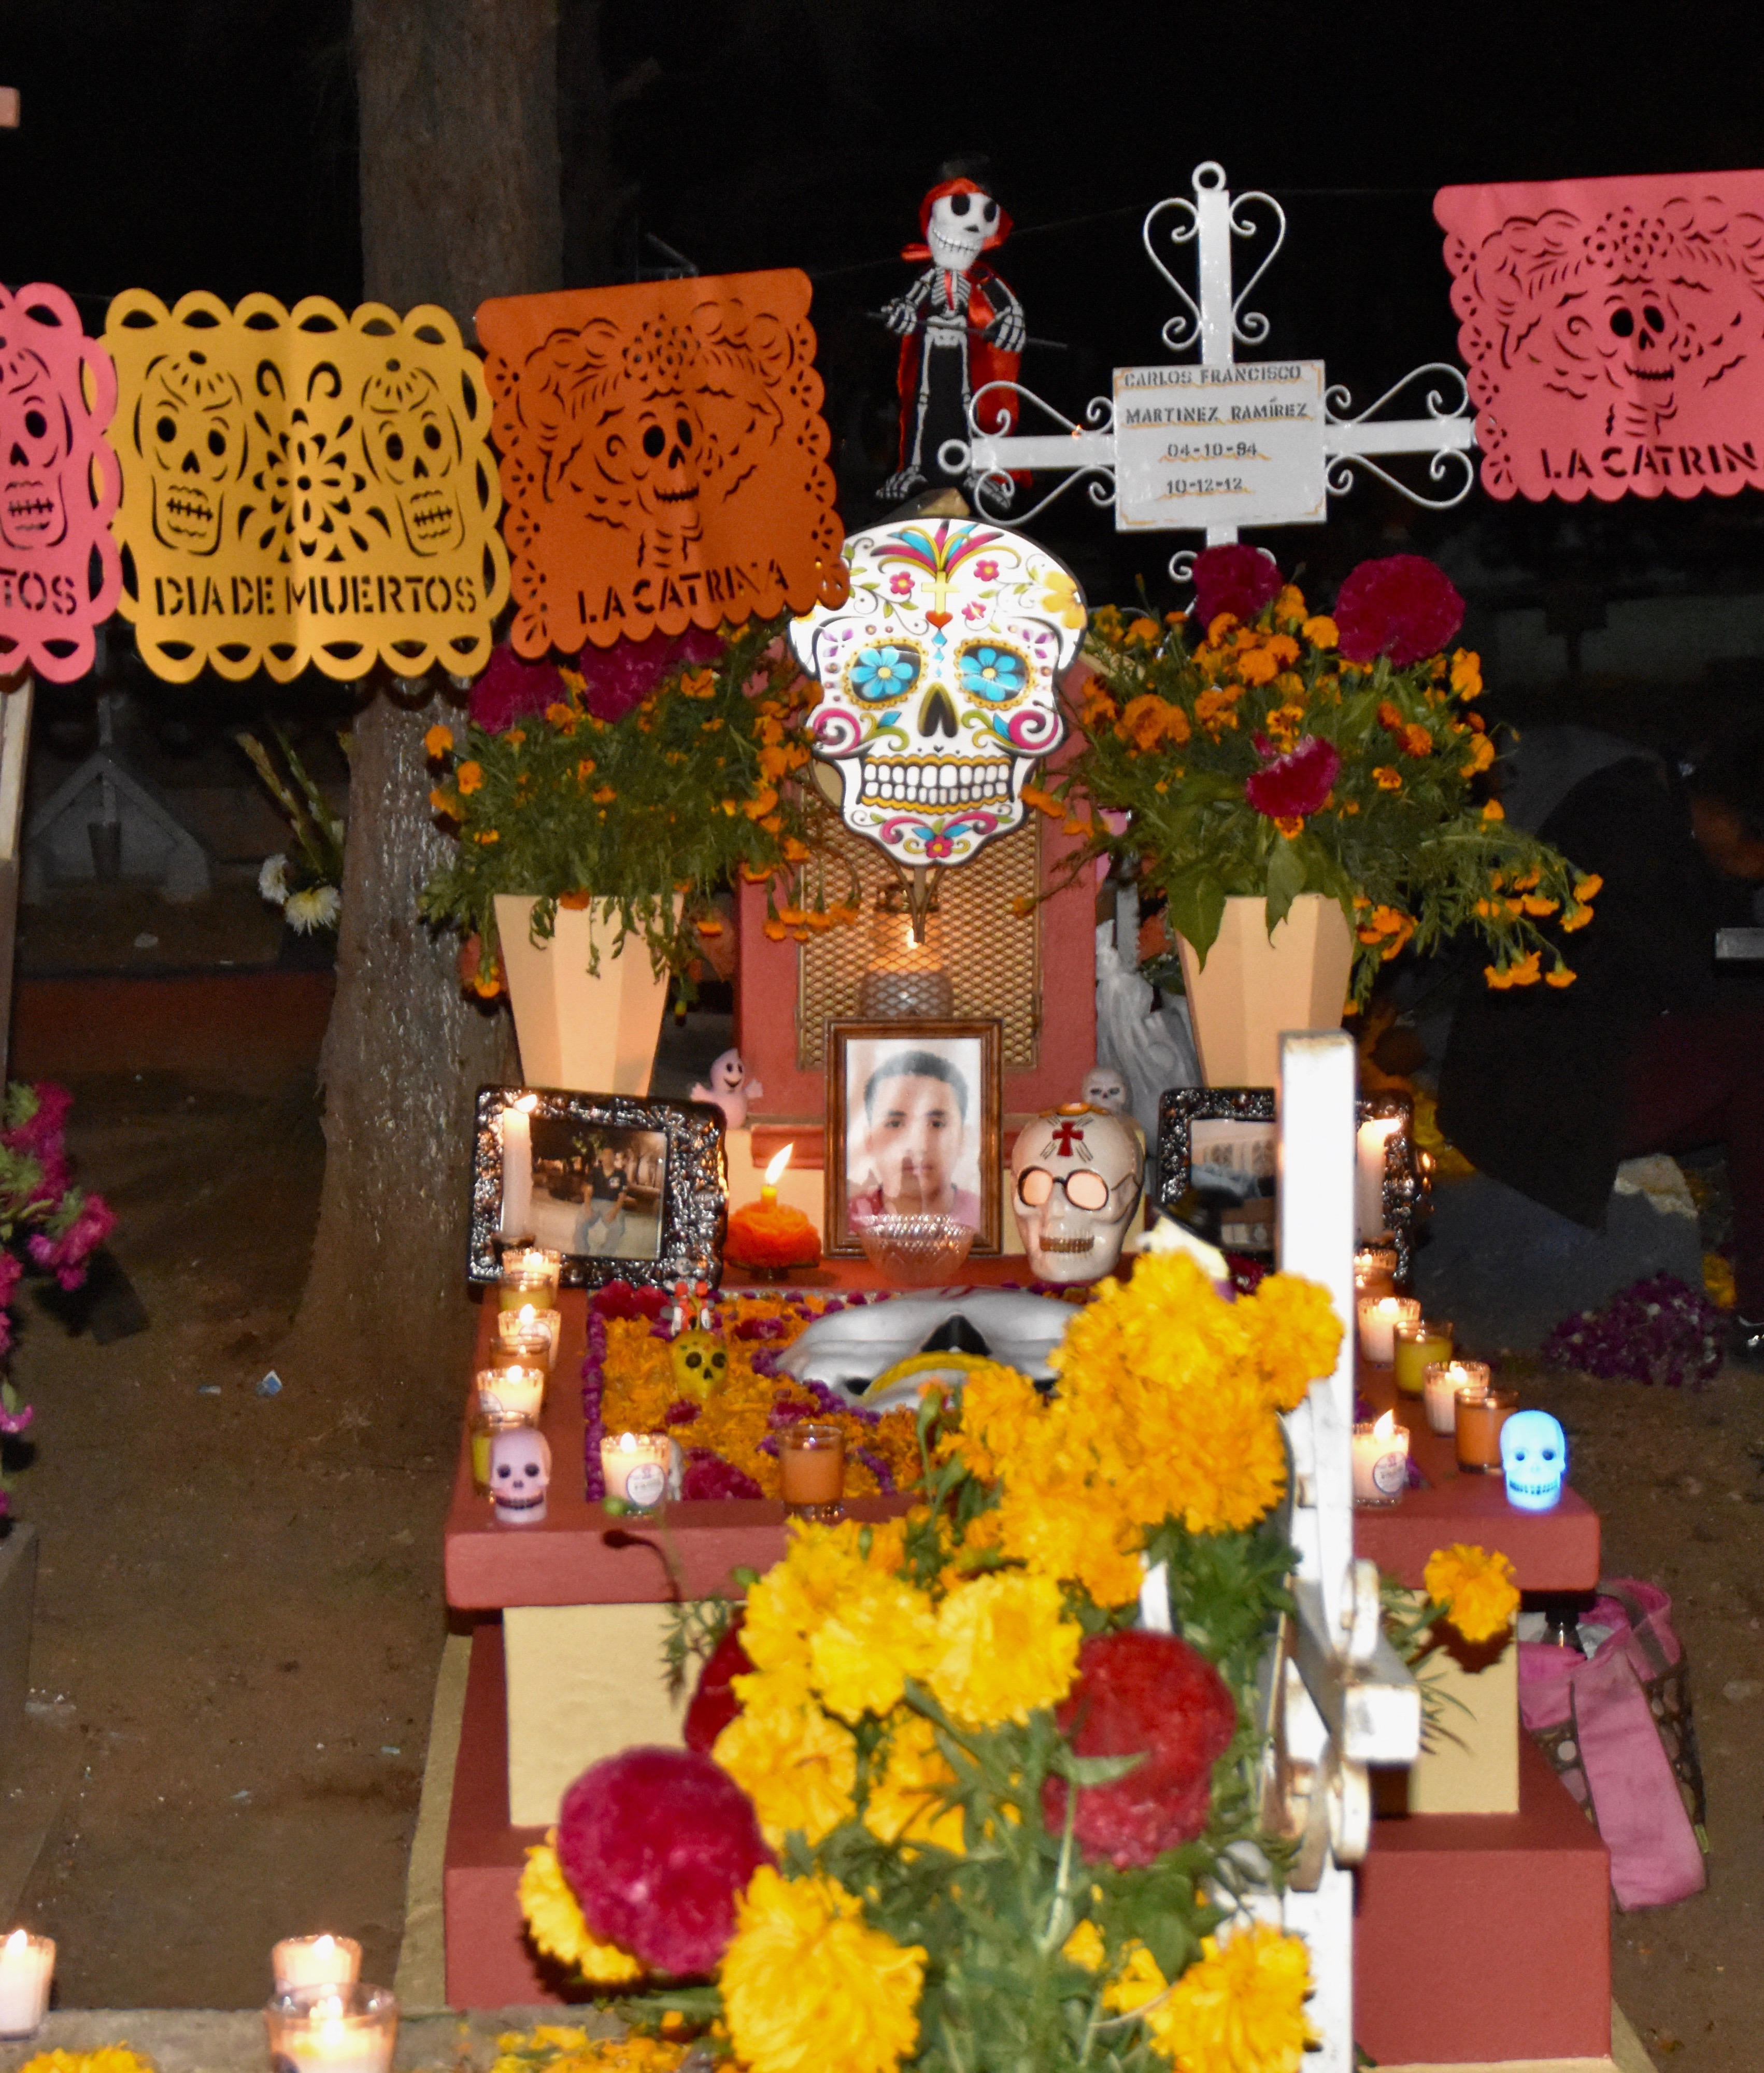 Cemetery Ofrenda,. Day of the Dead